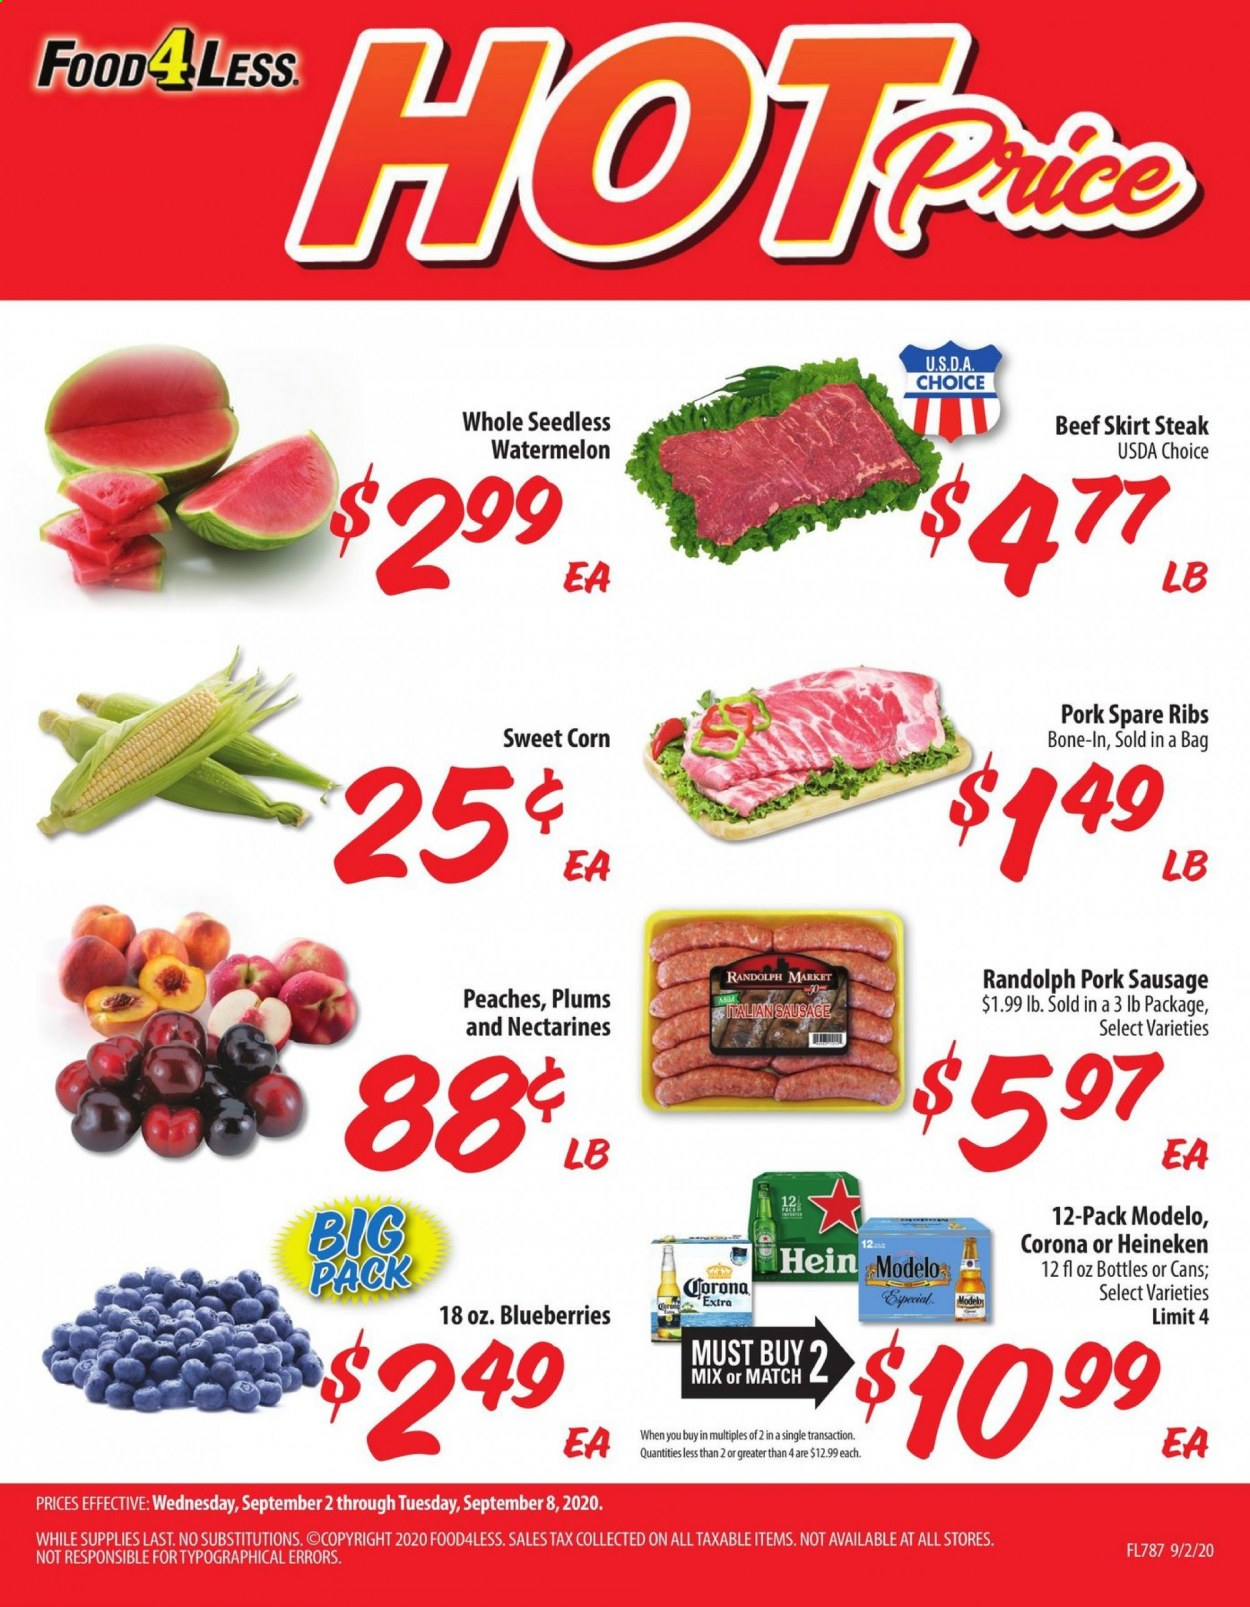 Food 4 Less Flyer - 09.02.2020 - 09.08.2020 - Sales products - bag, beef meat, blueberries, corn, nectarines, sausage, skirt, watermelon, plums, pork meat, pork sausage, peaches, pork spare ribs, steak, ribs, corona, heineken, peache. Page 1.